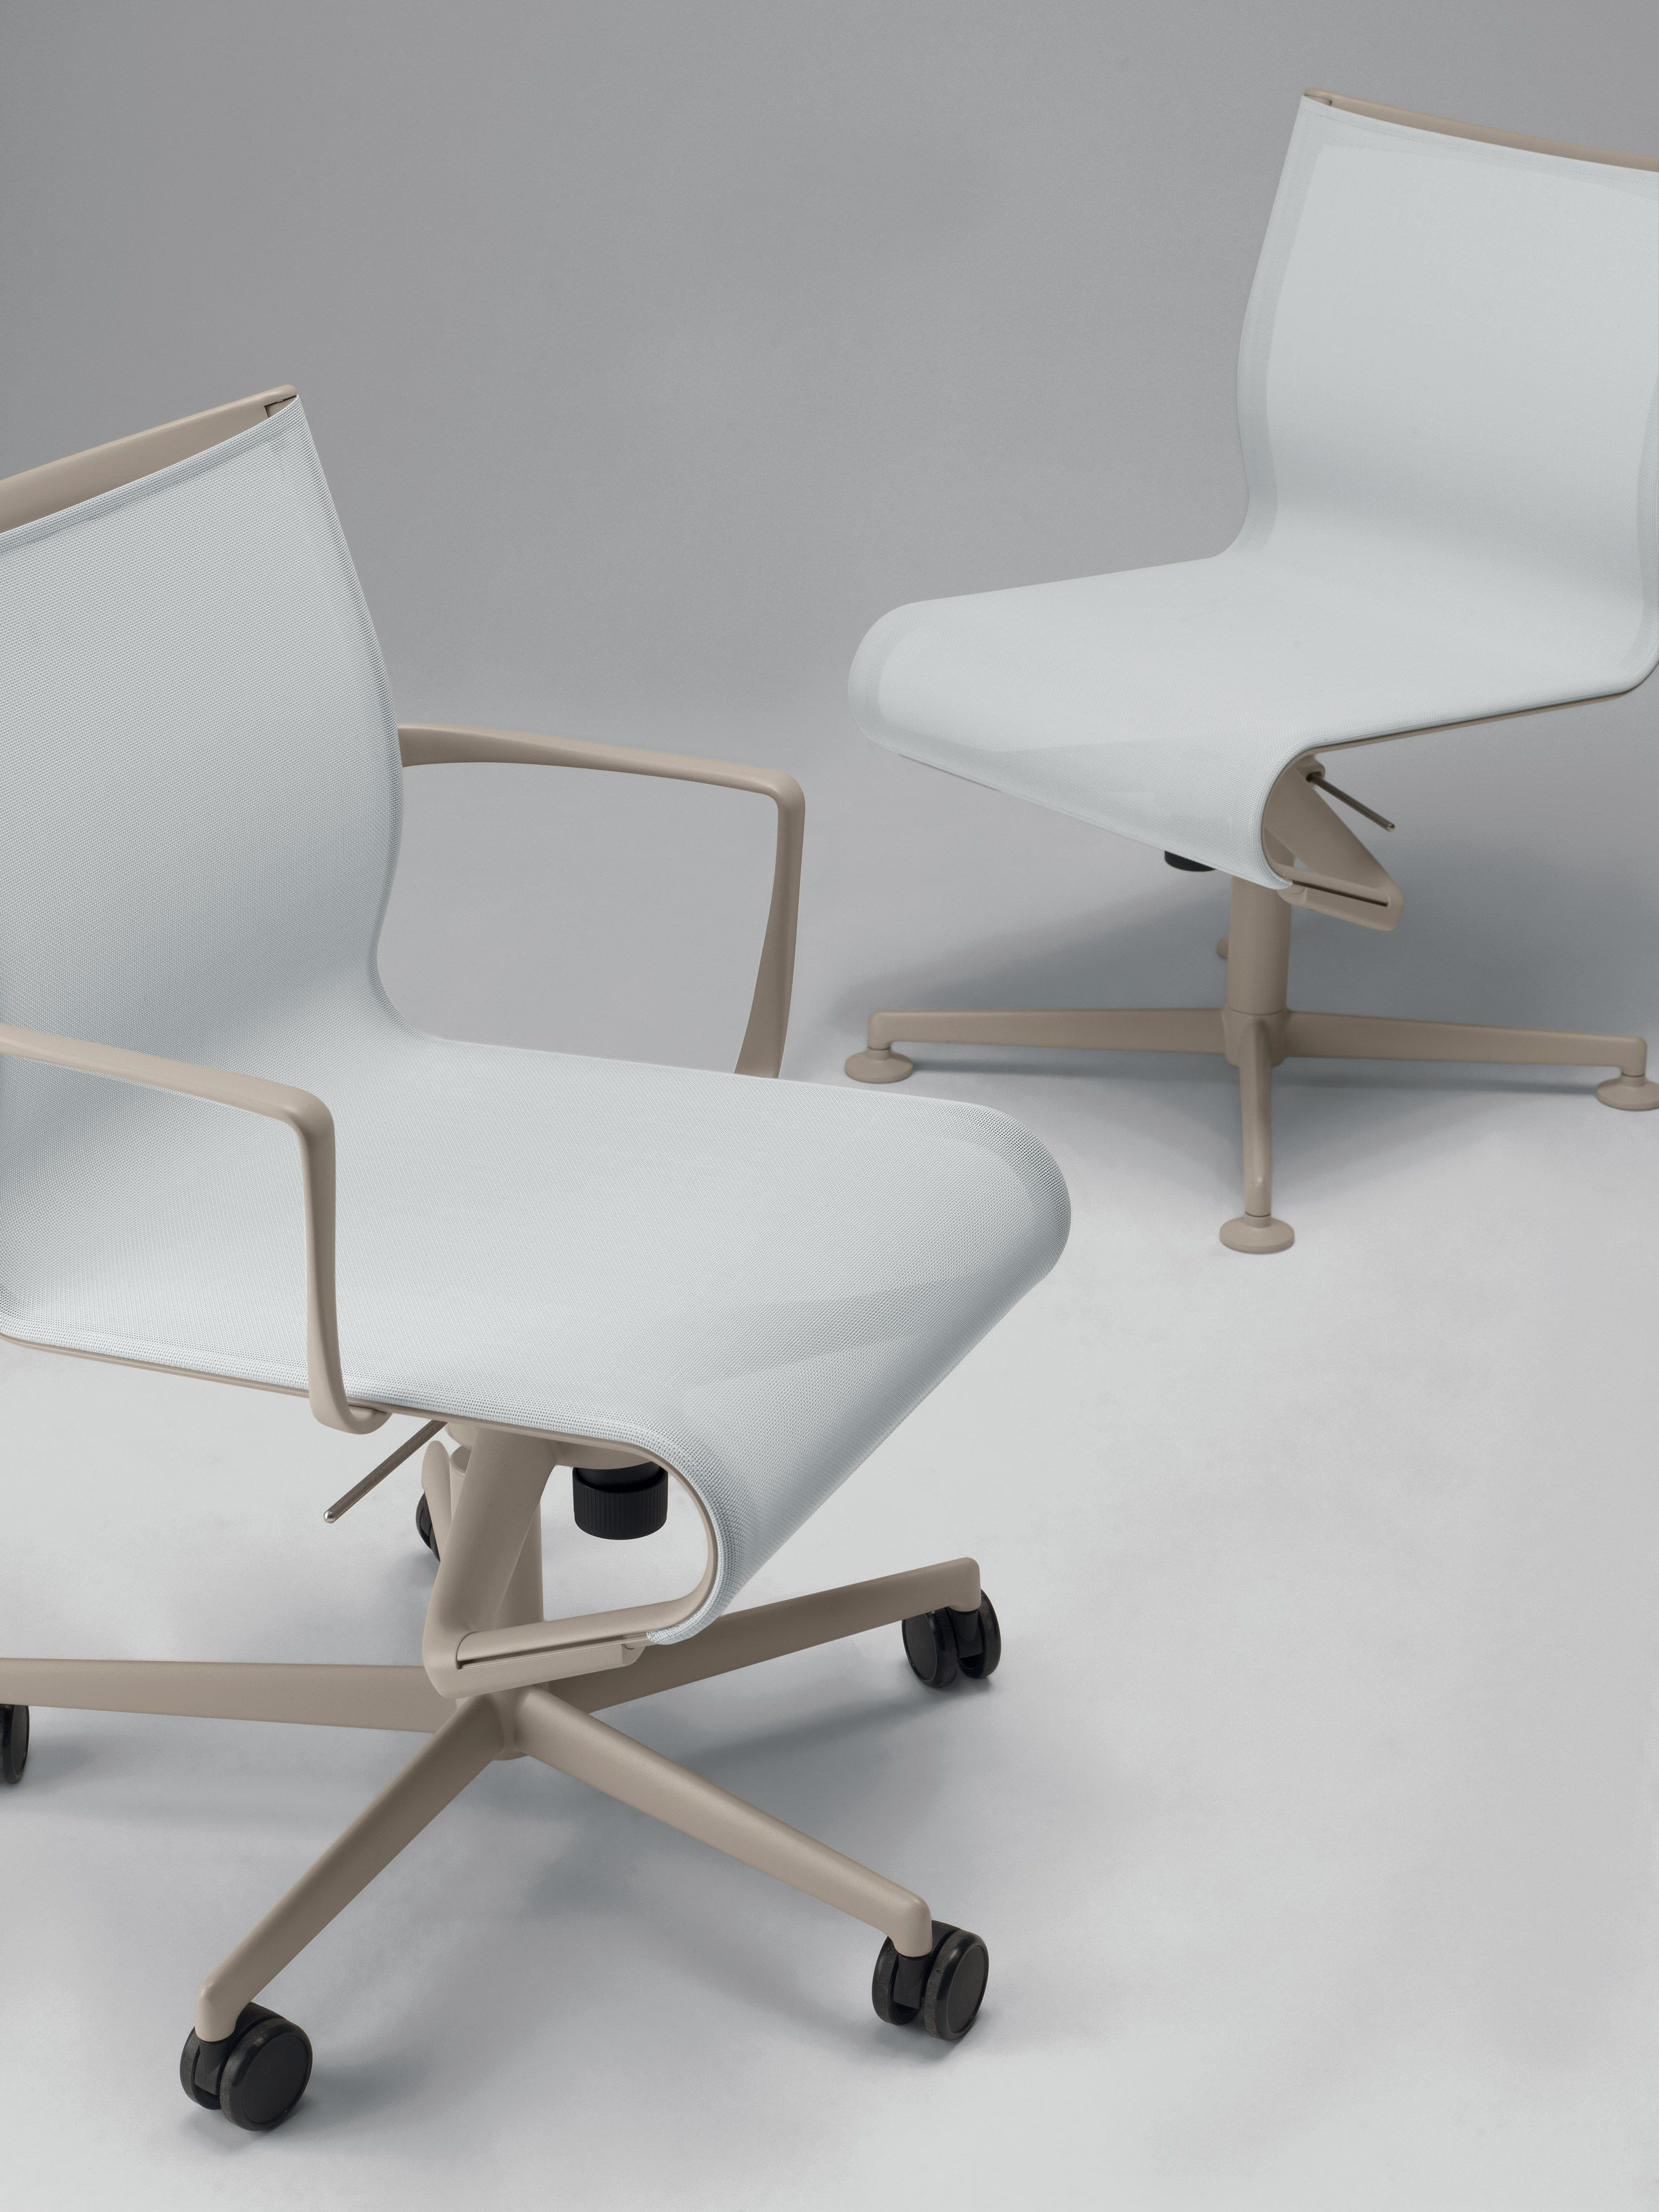 Dezeen Promotion Alberto Meda Improves The Frame Office Chairs He